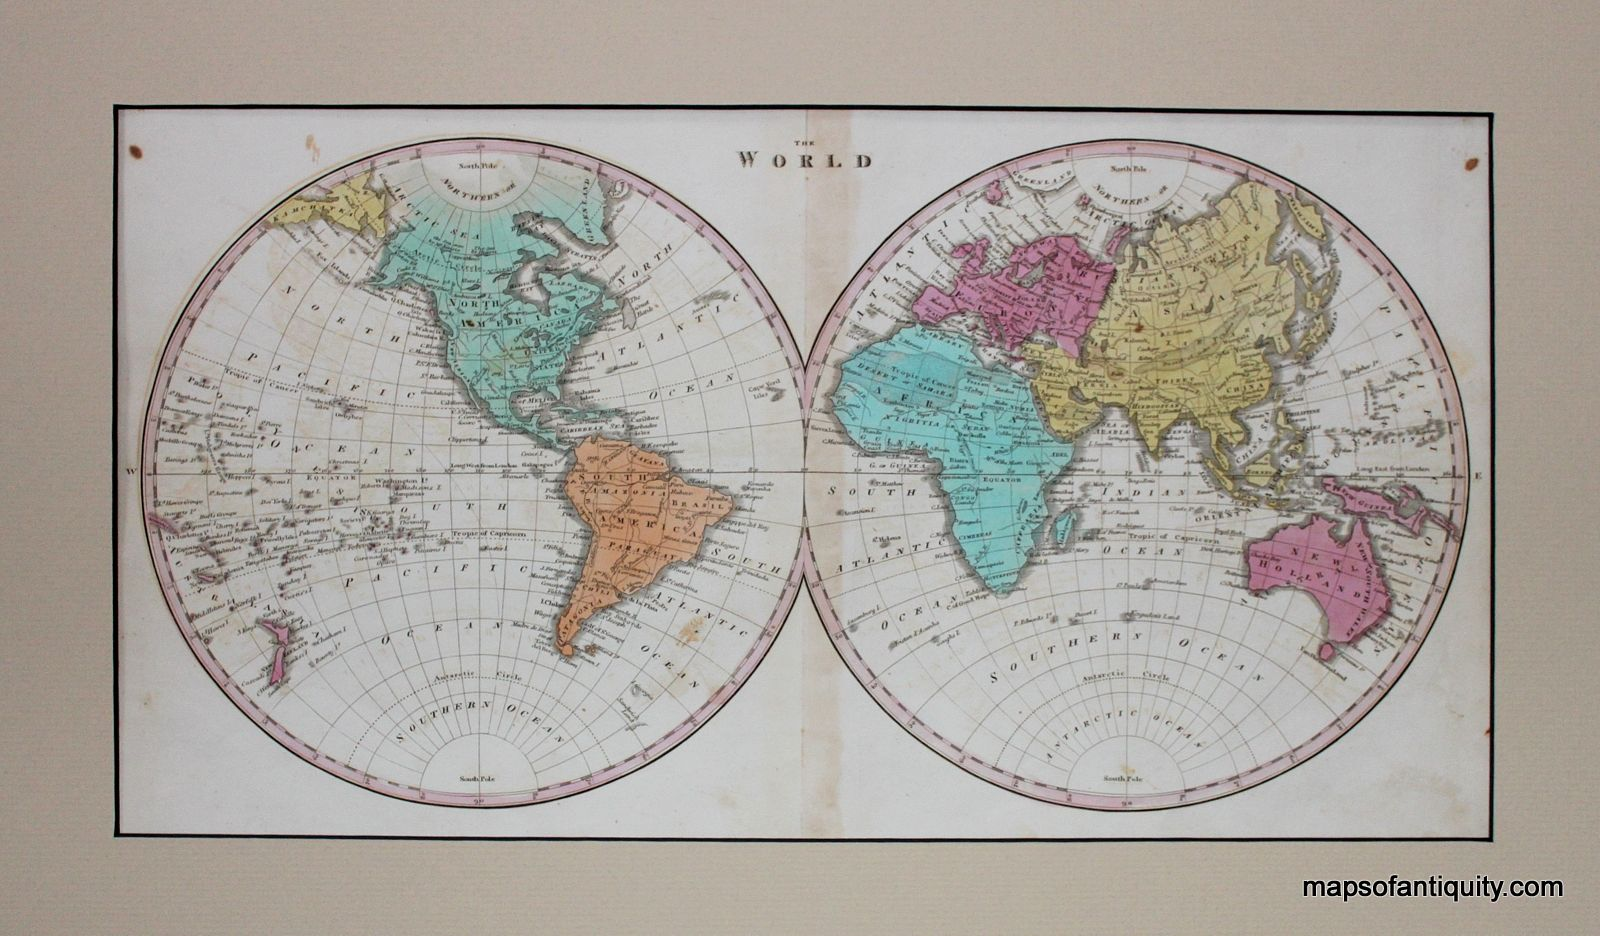 The world 1830 antique engraved hand colored map of the world in the world 1830 antique engraved hand colored map of the world in hemispheres gumiabroncs Image collections